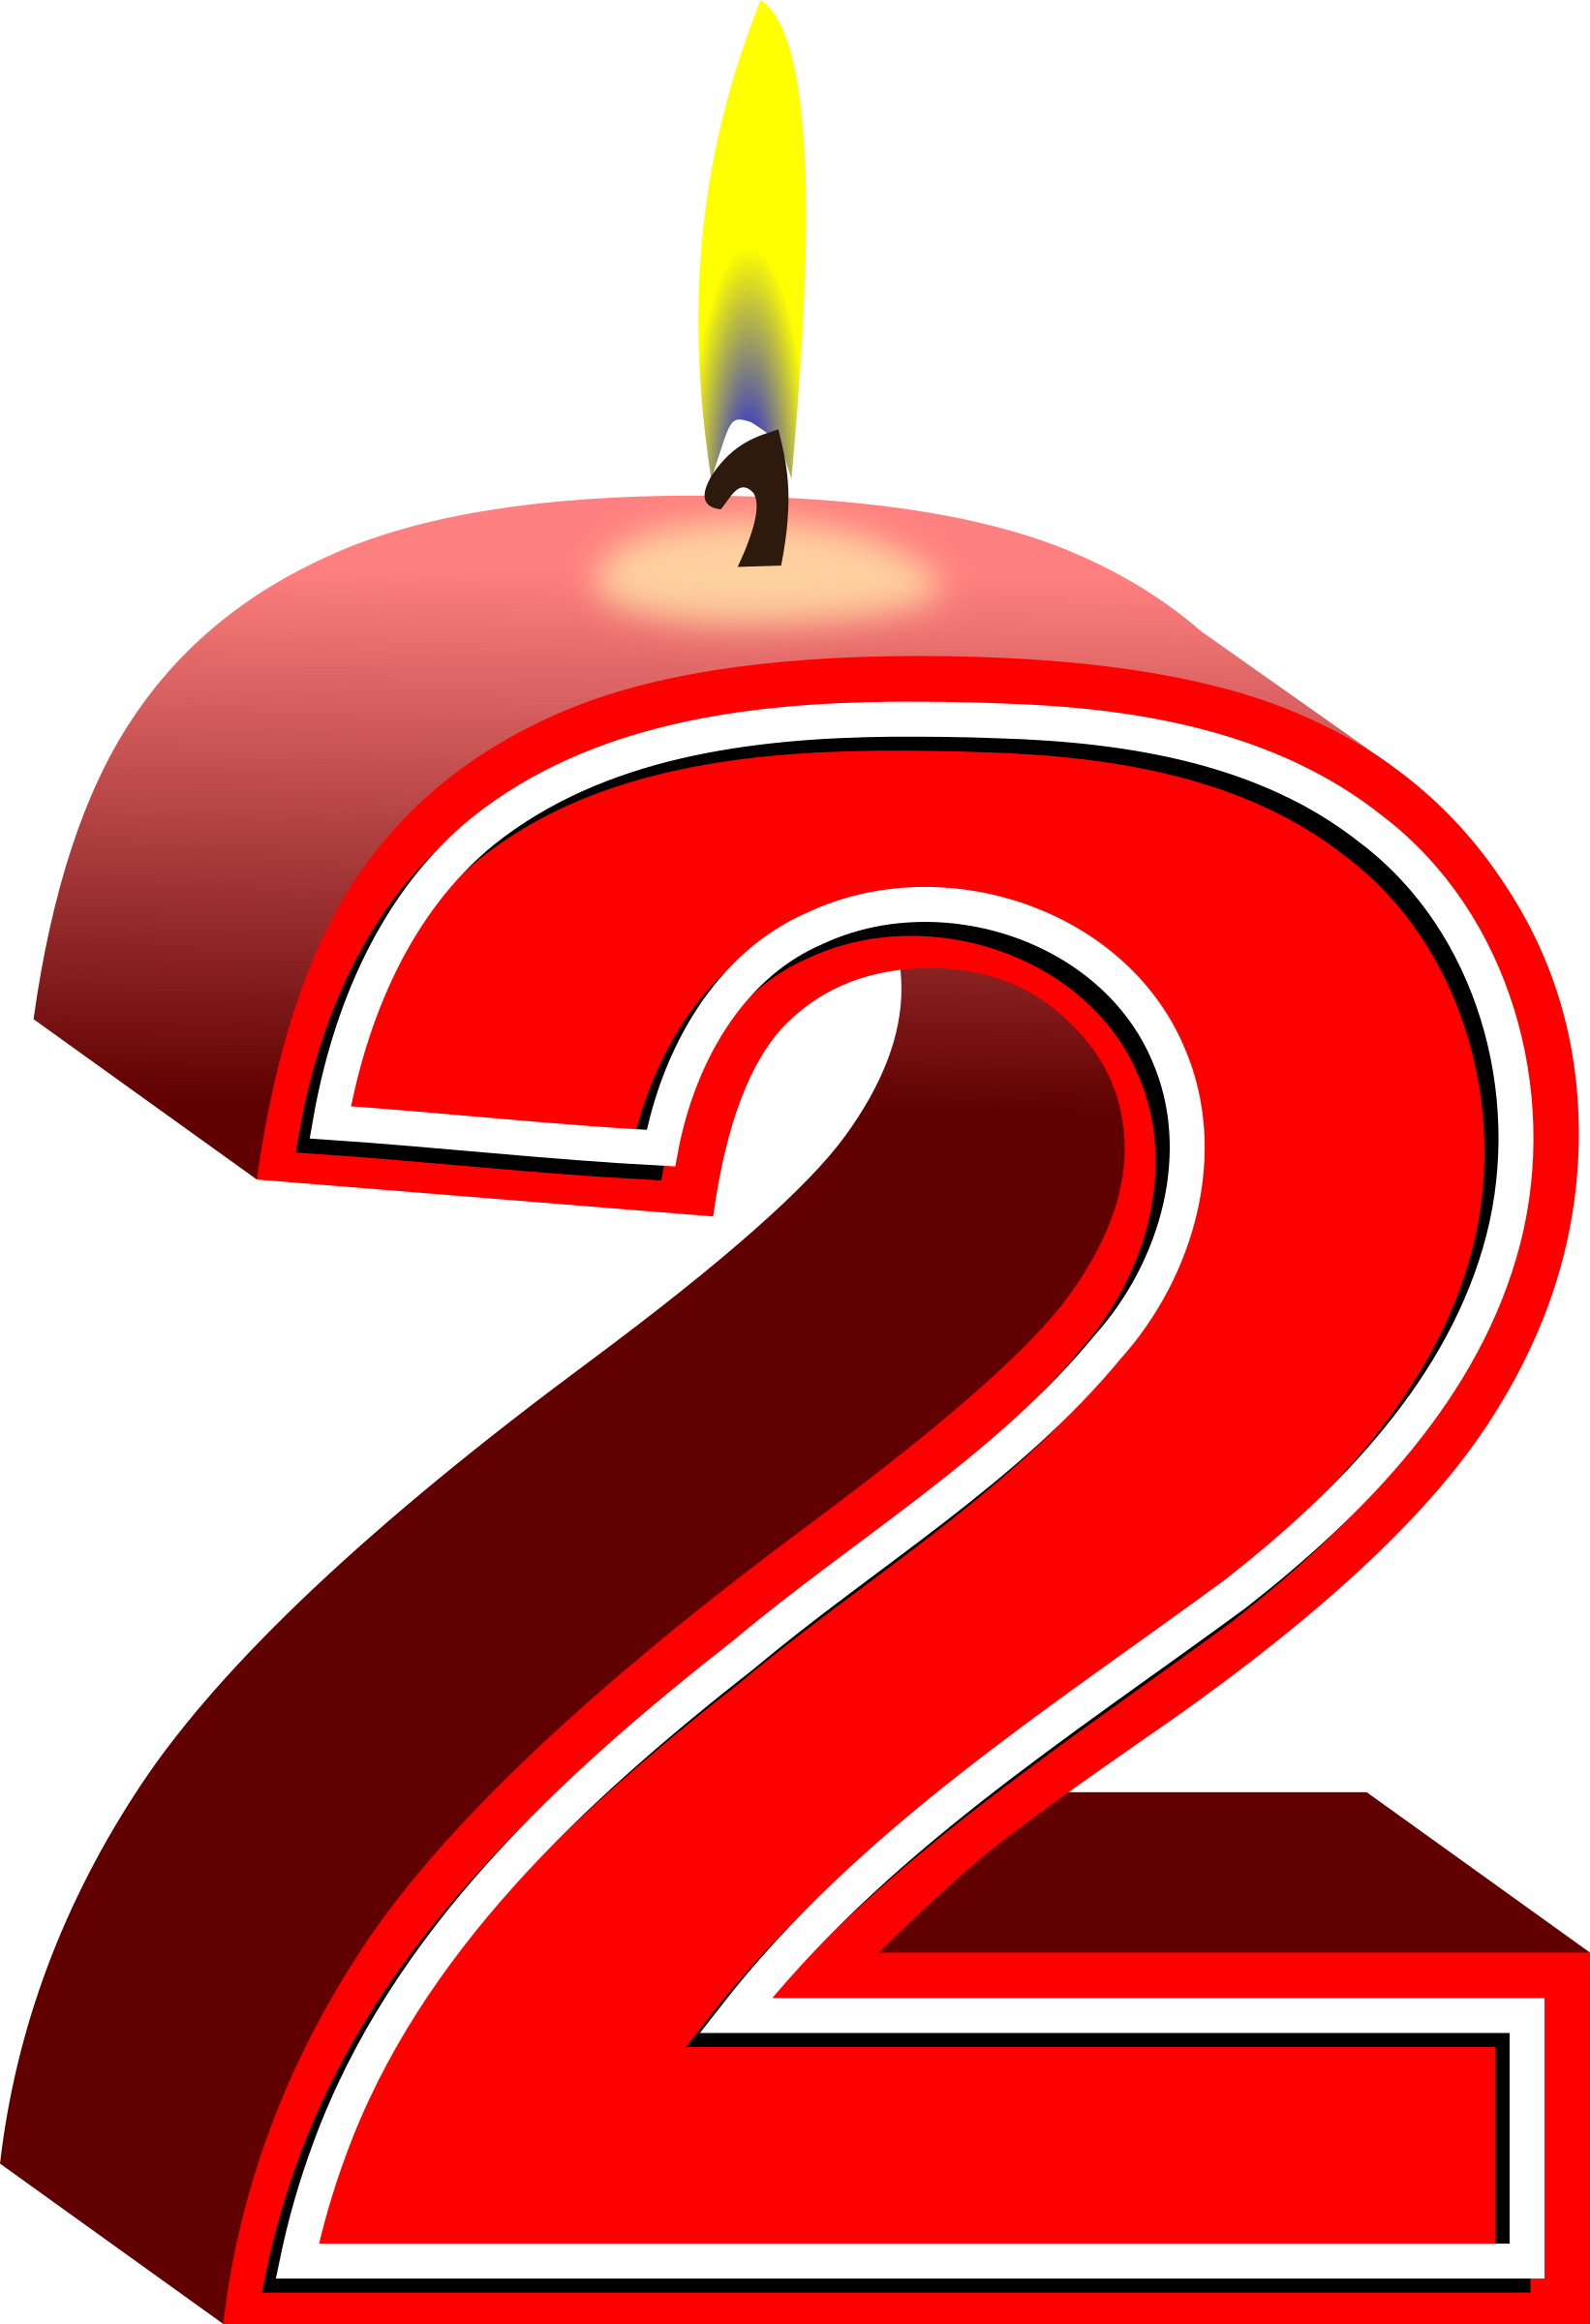 Birthday candle big image. Number 2 clipart 2png